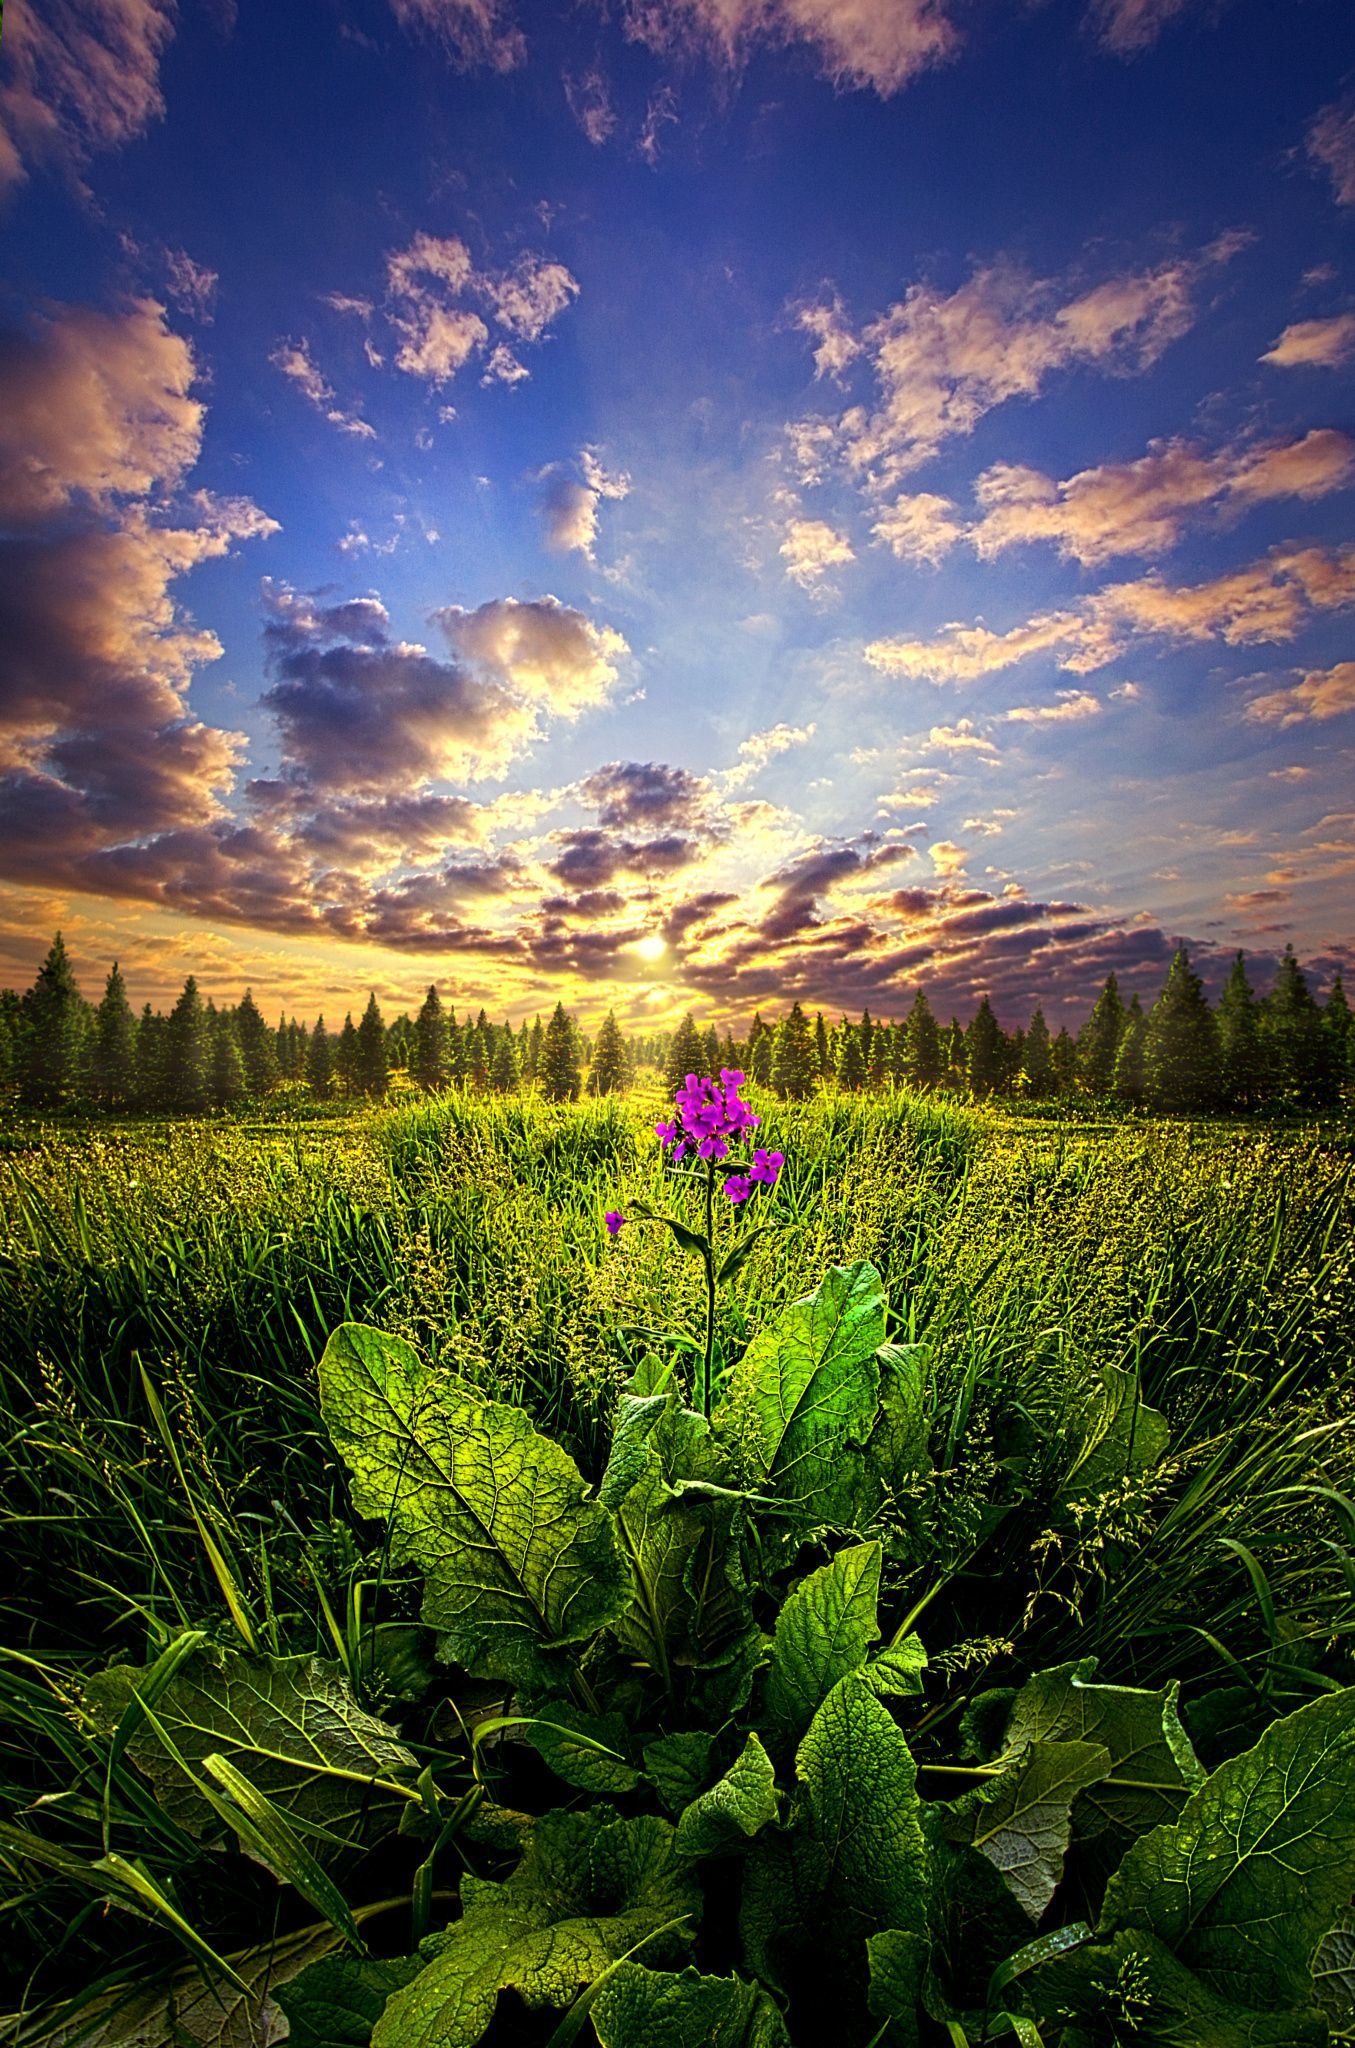 Landscaping - Longing By Phil Koch On 500px... #art #beam #clouds #field #flowers